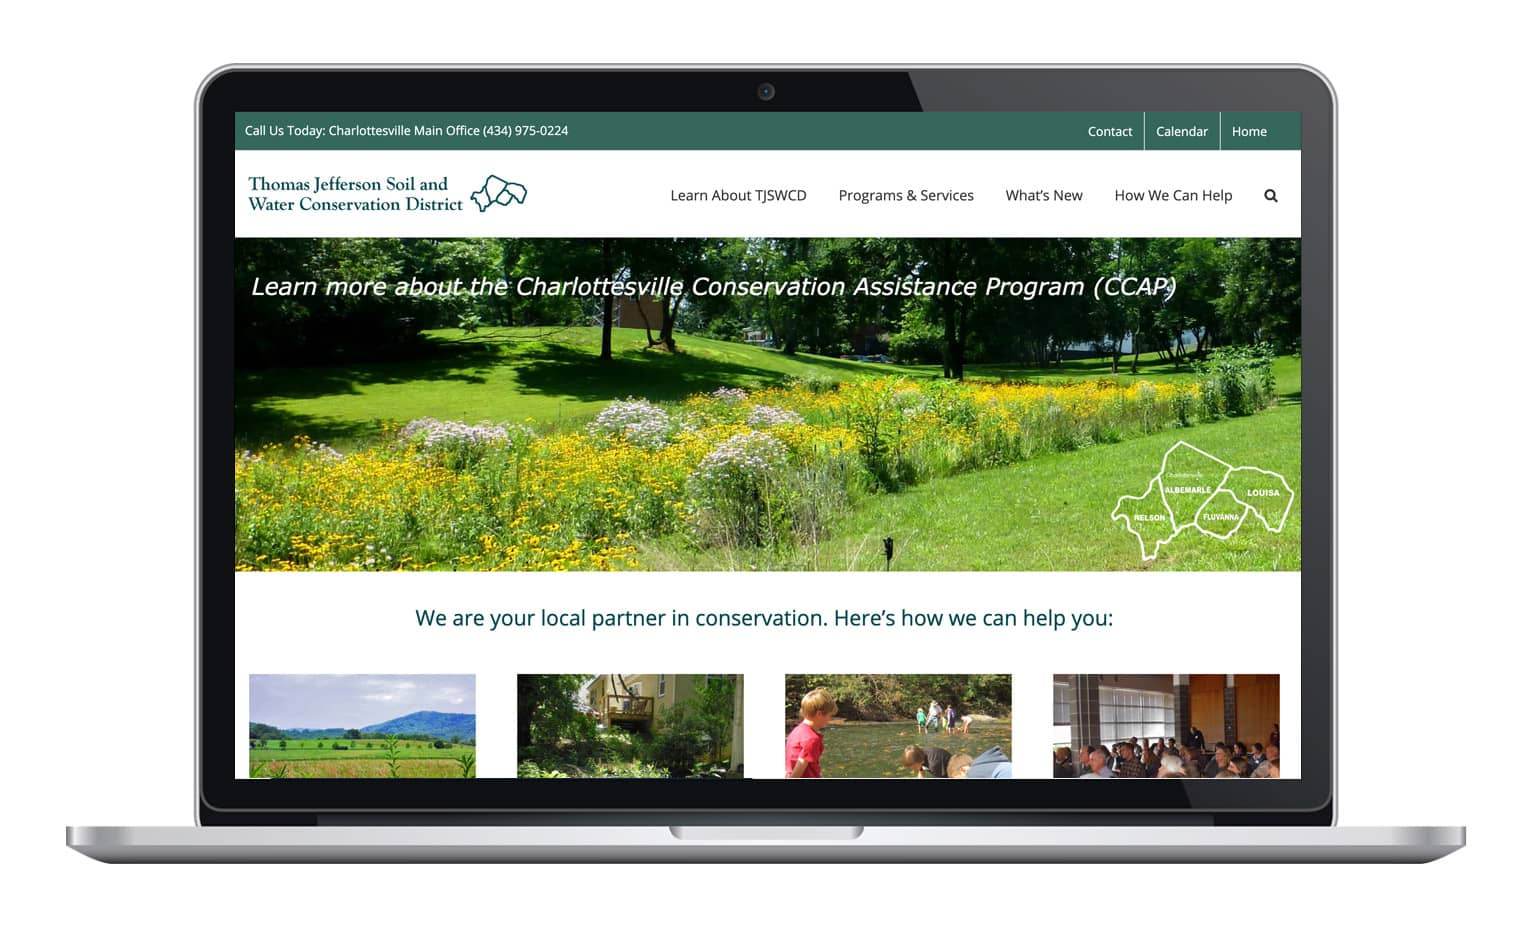 Thomas Jefferson Soil and Water Conservation District